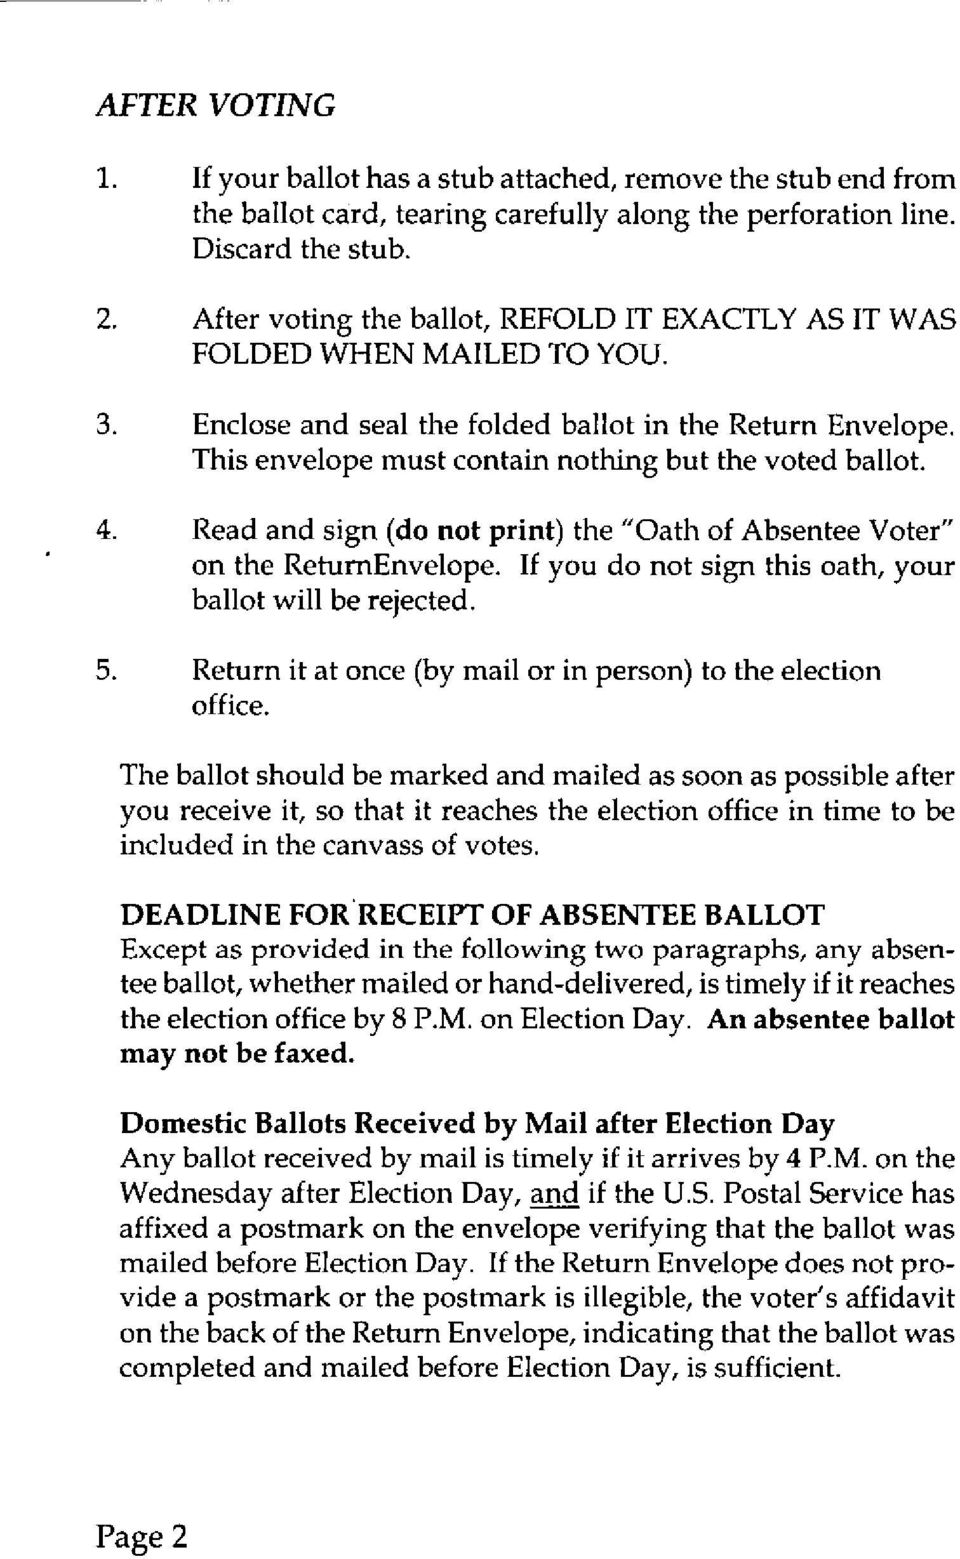 "4. Read and sign (do not print) the ""Oath of Absentee Voter"" on the ReturnEnvelope. If you do not sign this oath, your ballot will be rejected. 5."